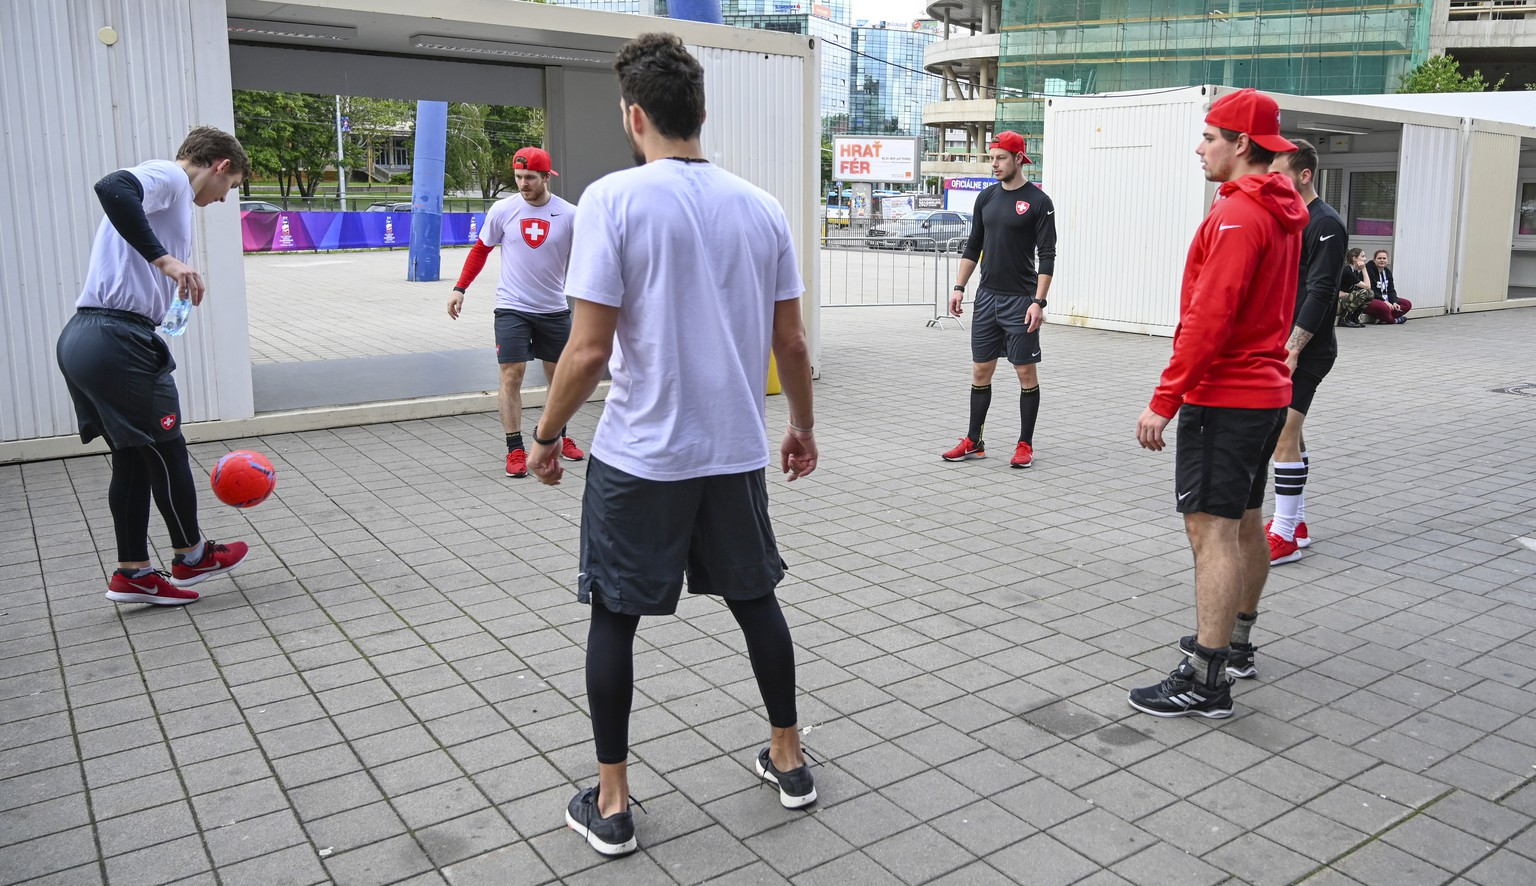 Switzerland`s players during the warm up in front of the Steel Arena before a training session of the Swiss team at the IIHF 2019 World Ice Hockey Championships, at the Steel Arena in Kosice, Slovakia, on Wednesday, May 22, 2019. (KEYSTONE/Melanie Duchene)